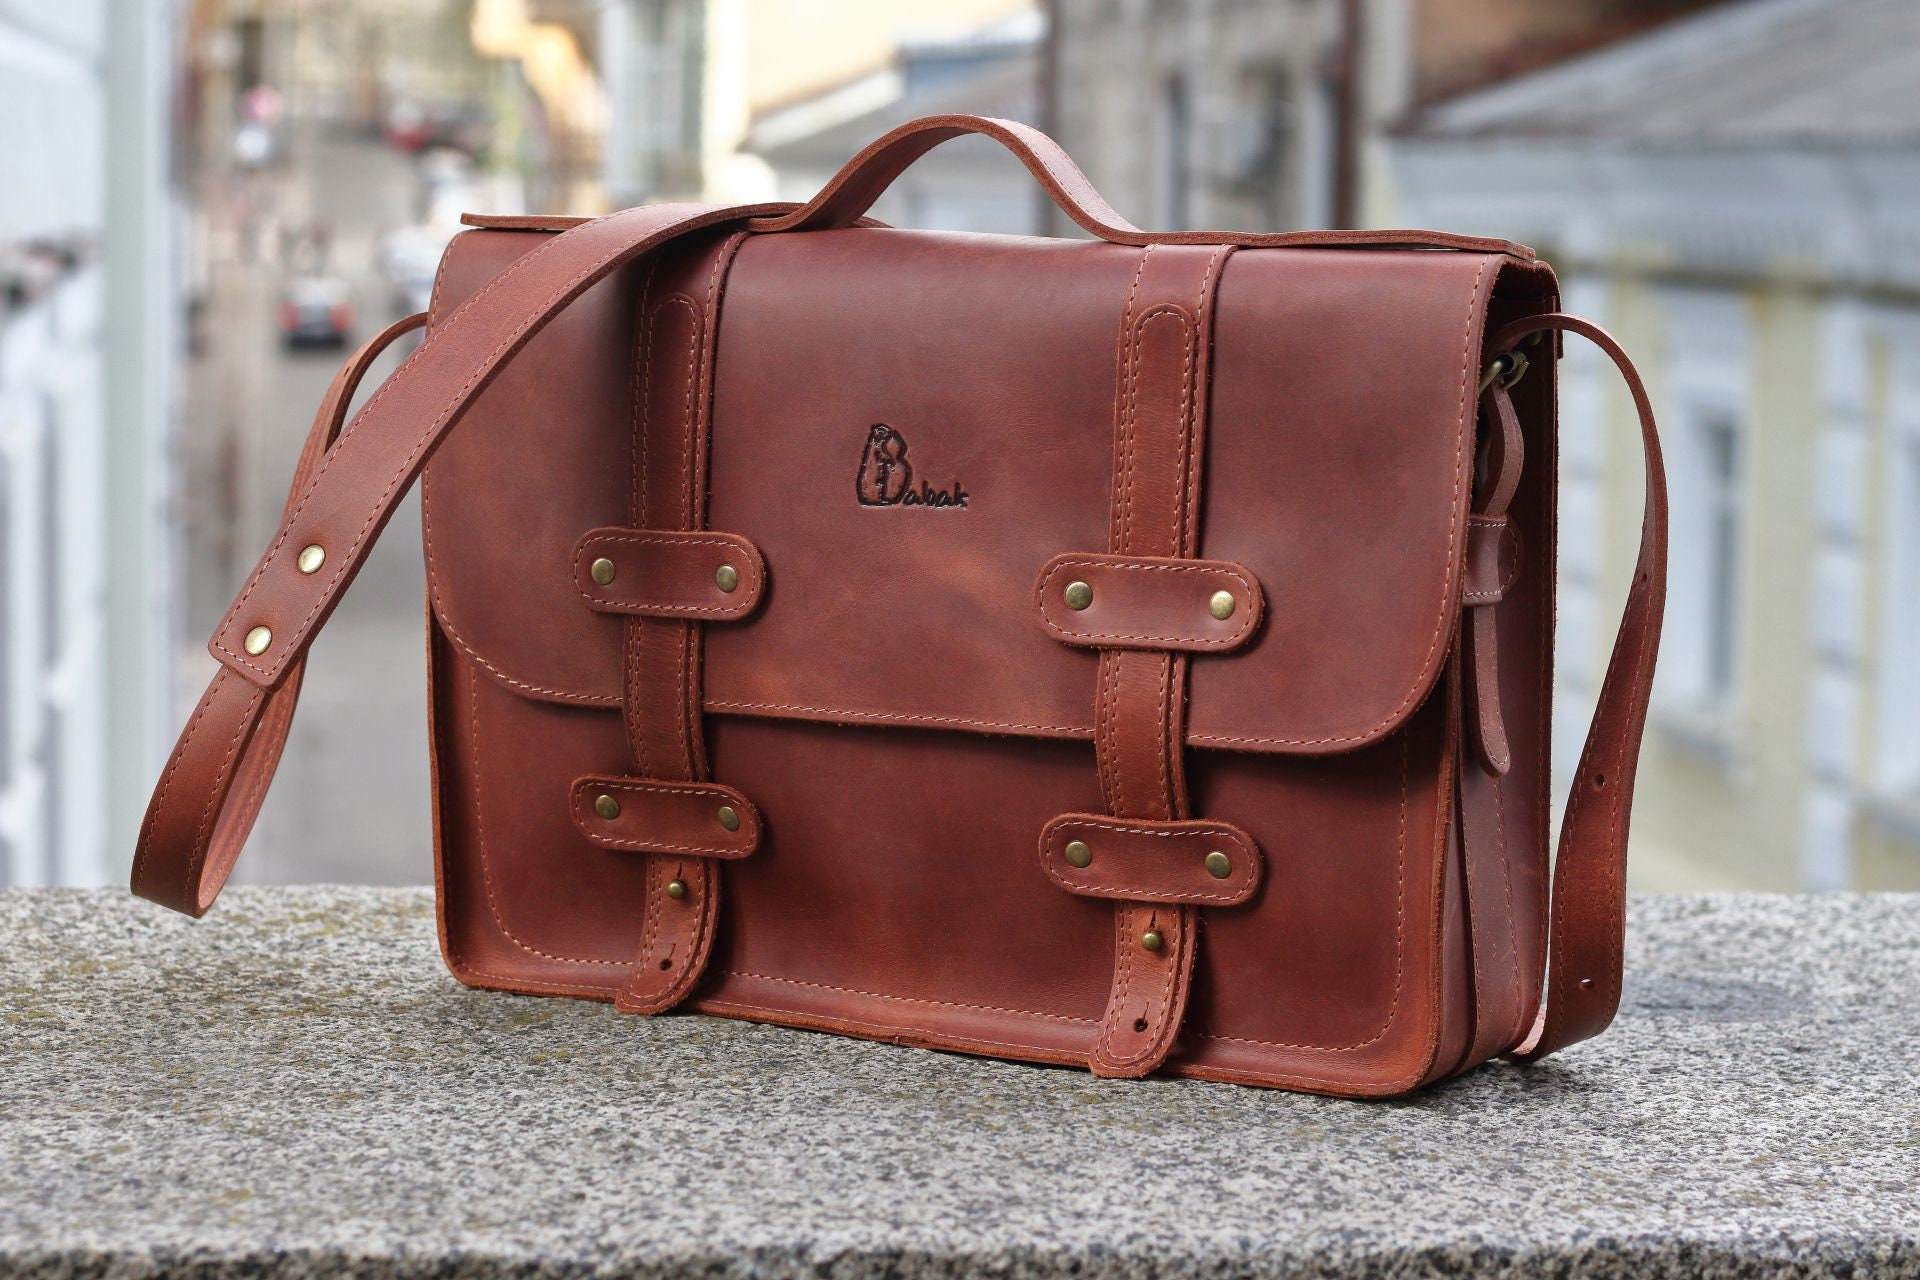 Brown leather satchel messenger bag brown leather bag brown  083f39722c1ea